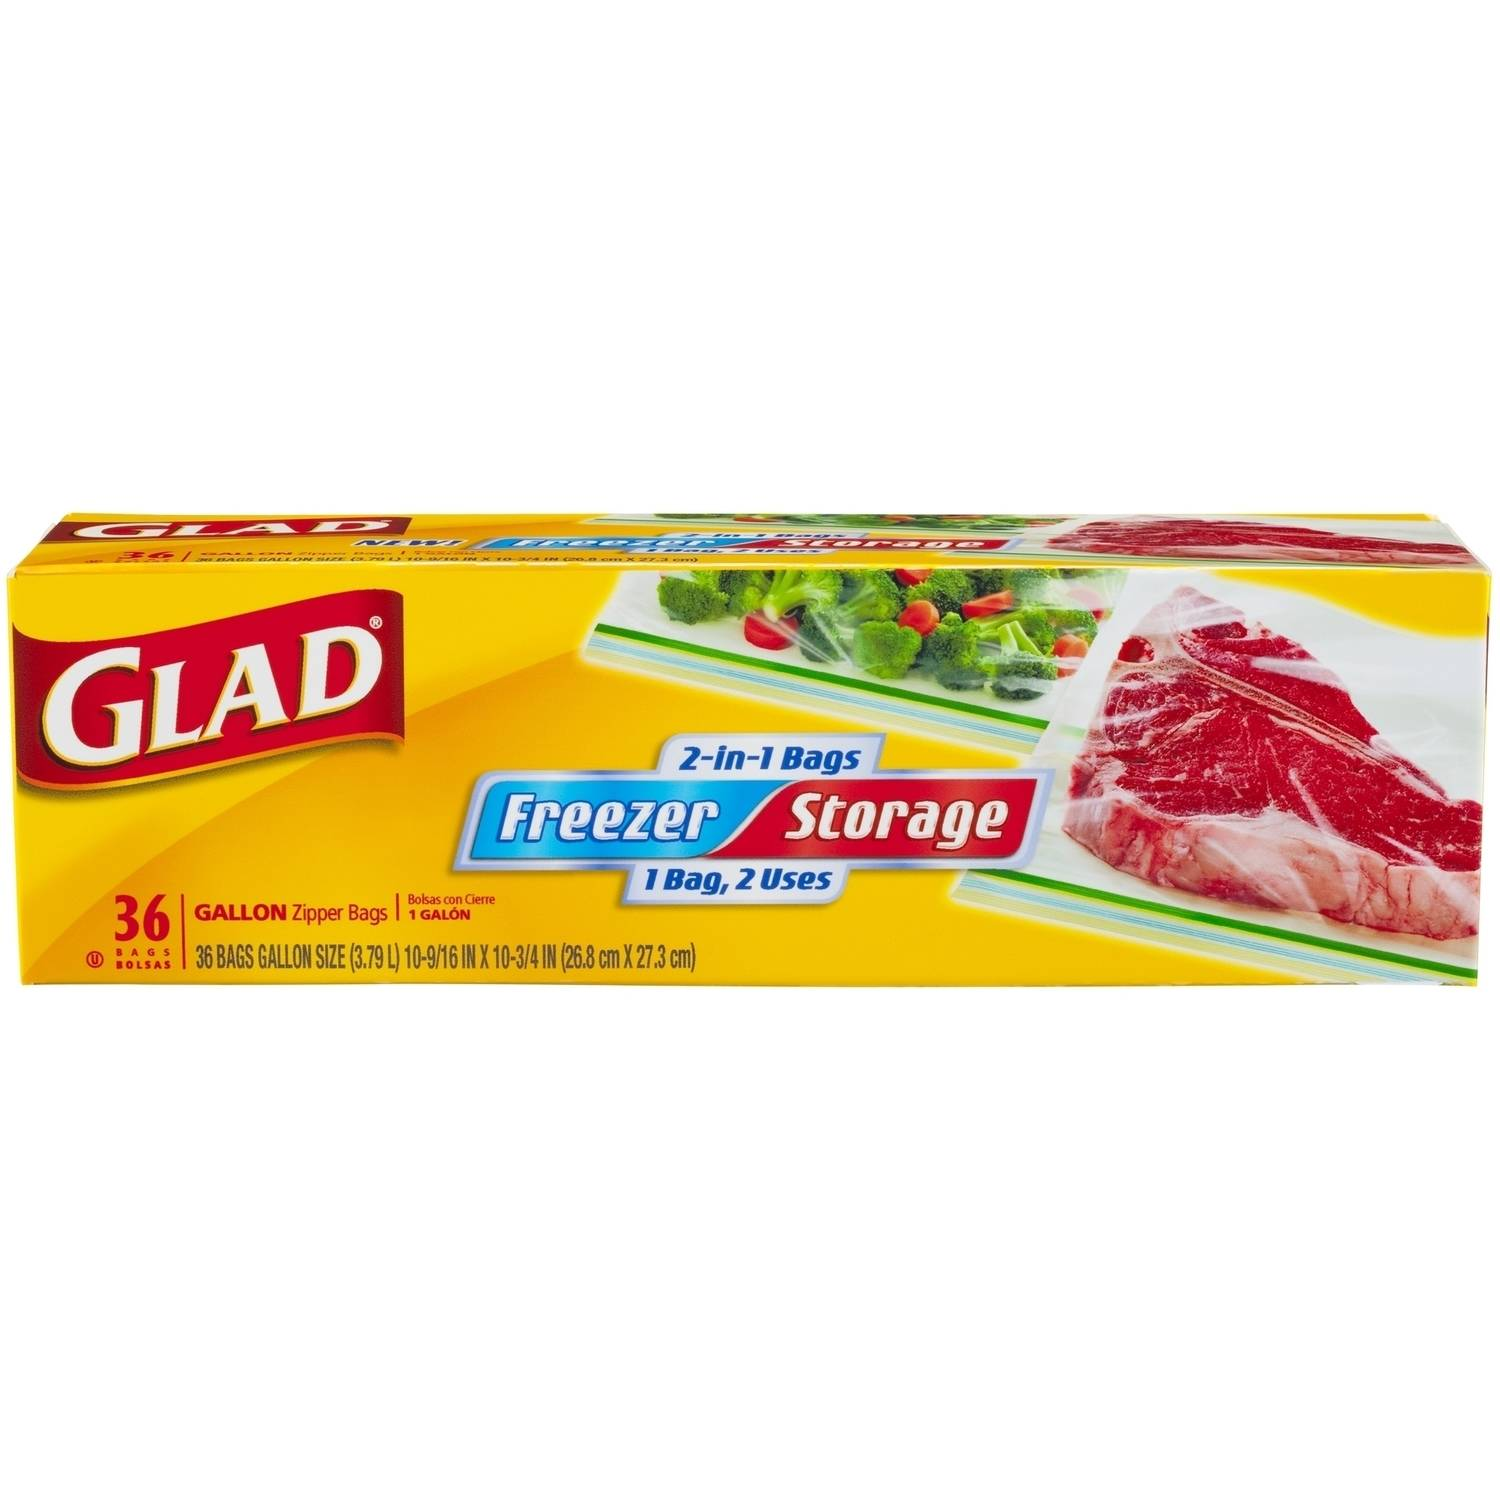 Glad Pinch & Seal 2-in-1 Freezer & Storage Bags, Gallon, 36 Ct